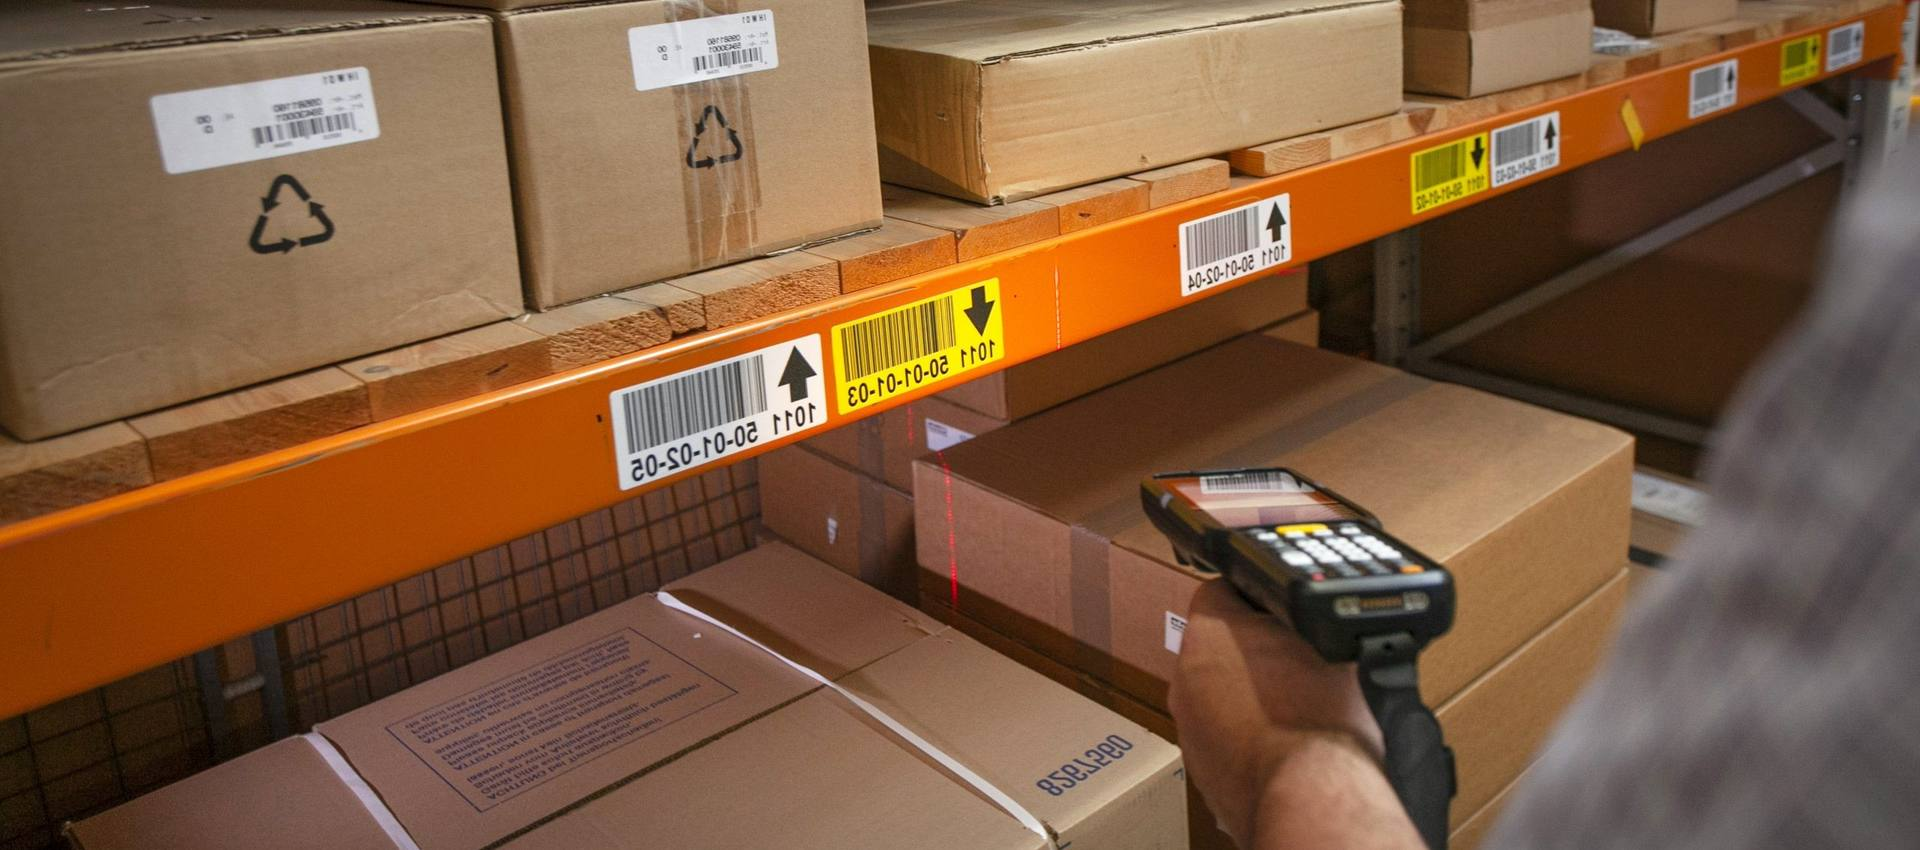 How to Use Warehouse Labels Effectively